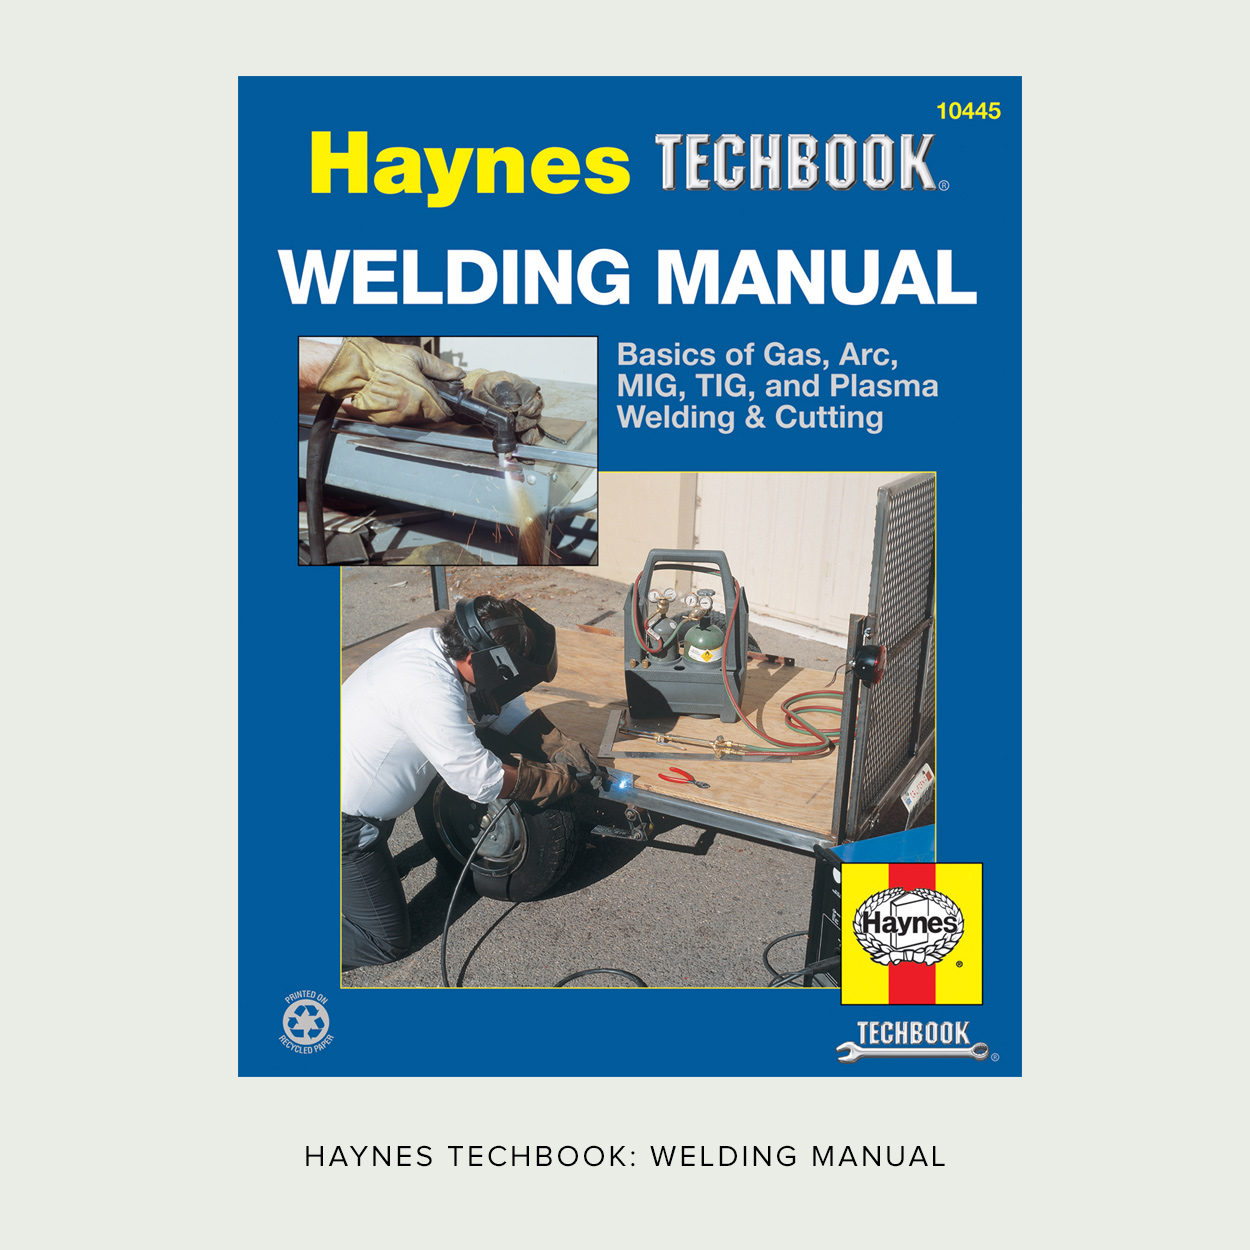 Getting Started With Motorcycle Welding Part Ii Bike Exif 110 Mig Welder Wiring Diagram Resources Tips And Tricks Weldingdiy Guide Lincoln Electricwelding Safety Millerwelding Technical Institute Of